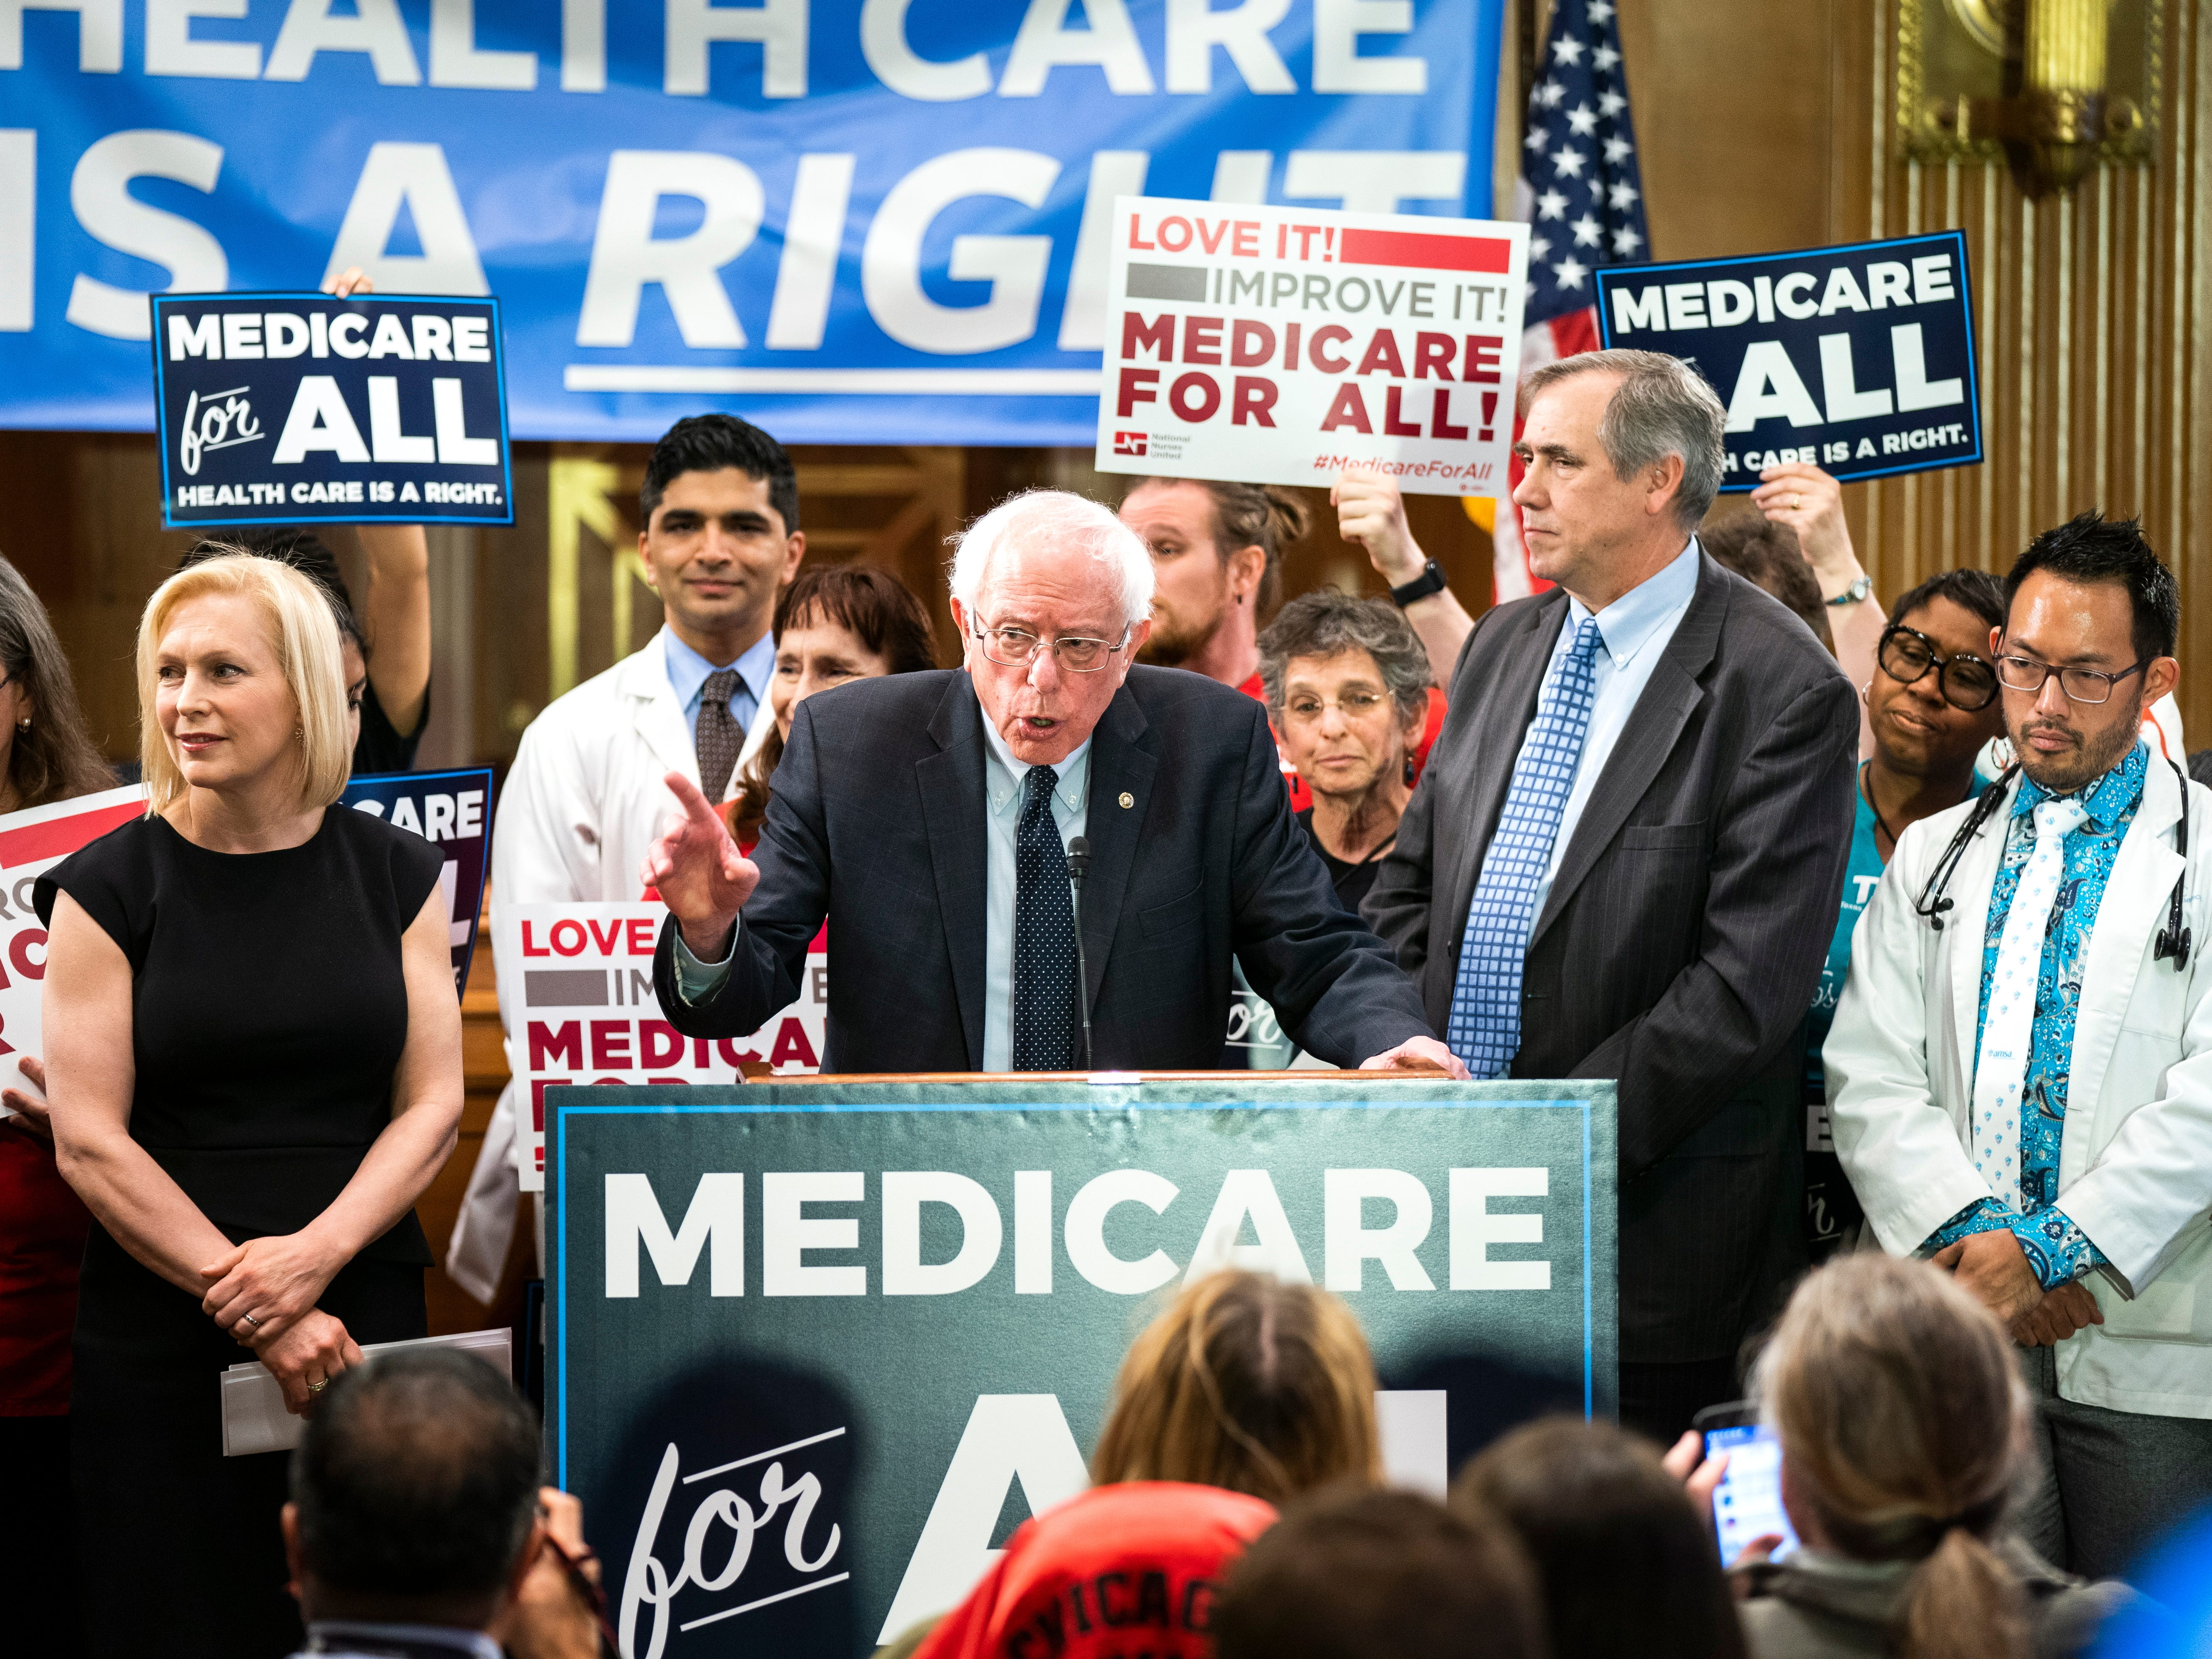 'Medicare for All': Bernie Sanders' political pipe dream